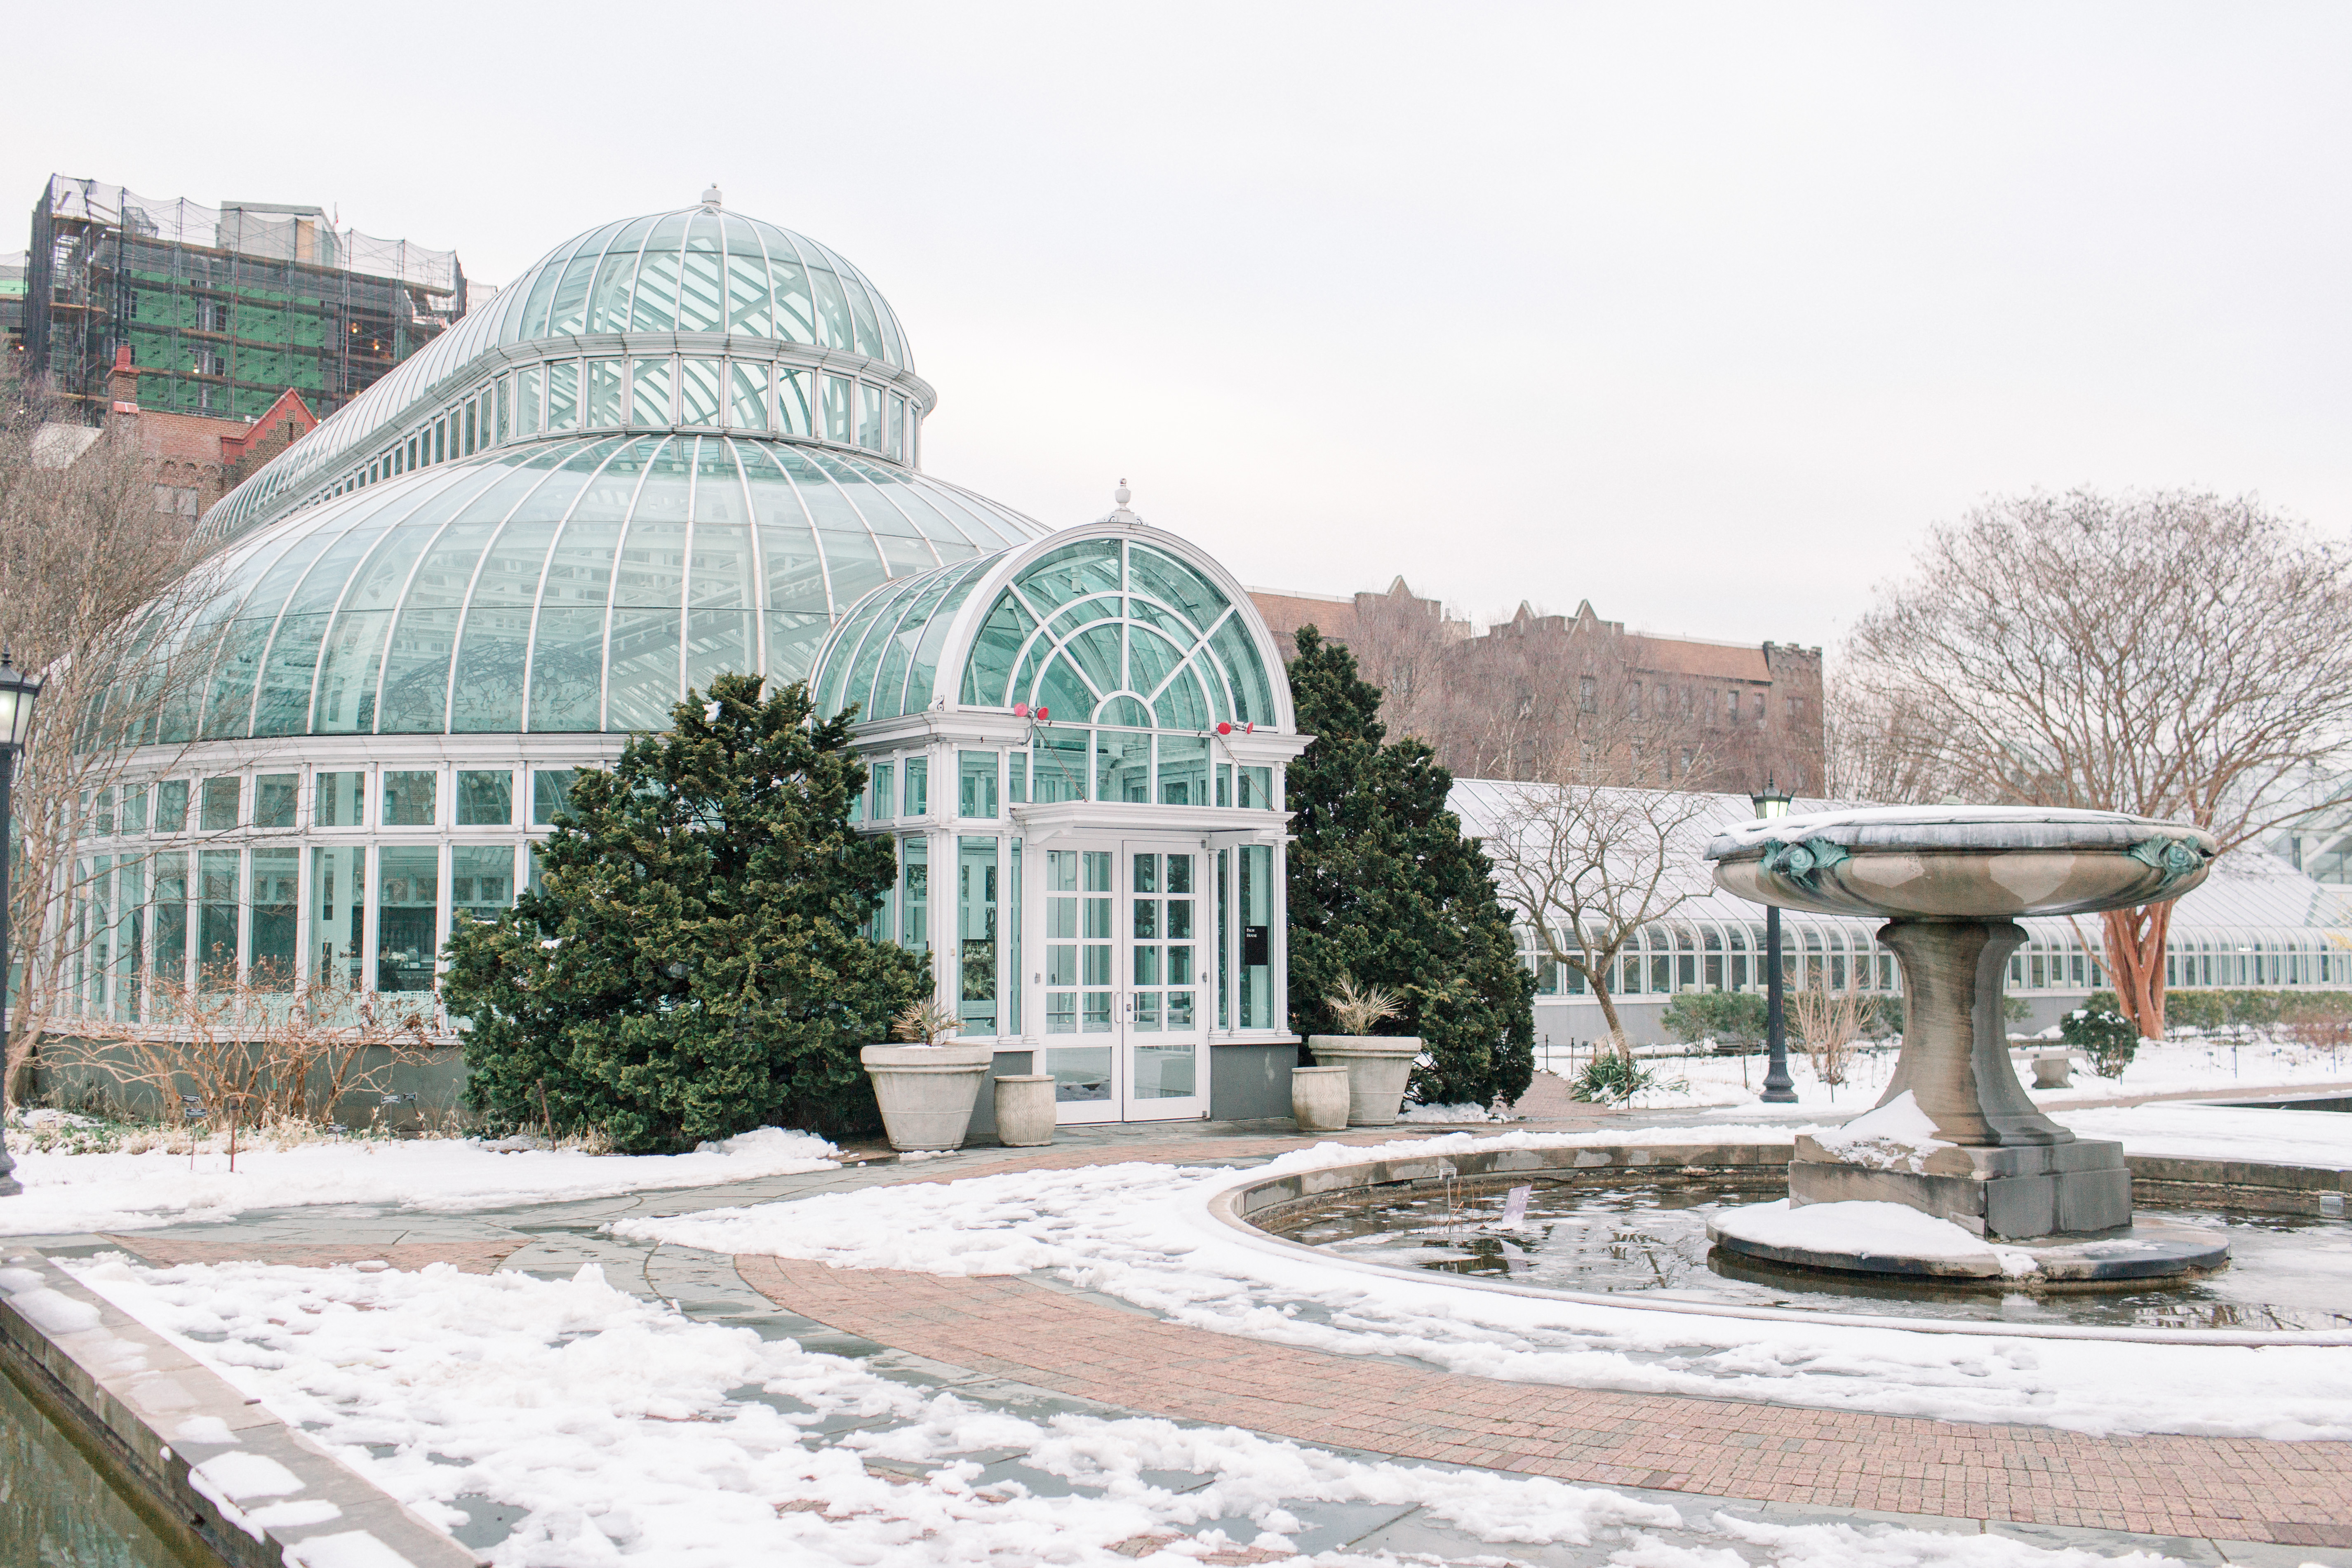 Palm house weddings at brooklyn botanic garden offers gorgeous outdoor settings and the exquisite palm house for your reception. Brooklyn Botanic Garden Winter Wedding Brooklyn Bride Modern Wedding Blog